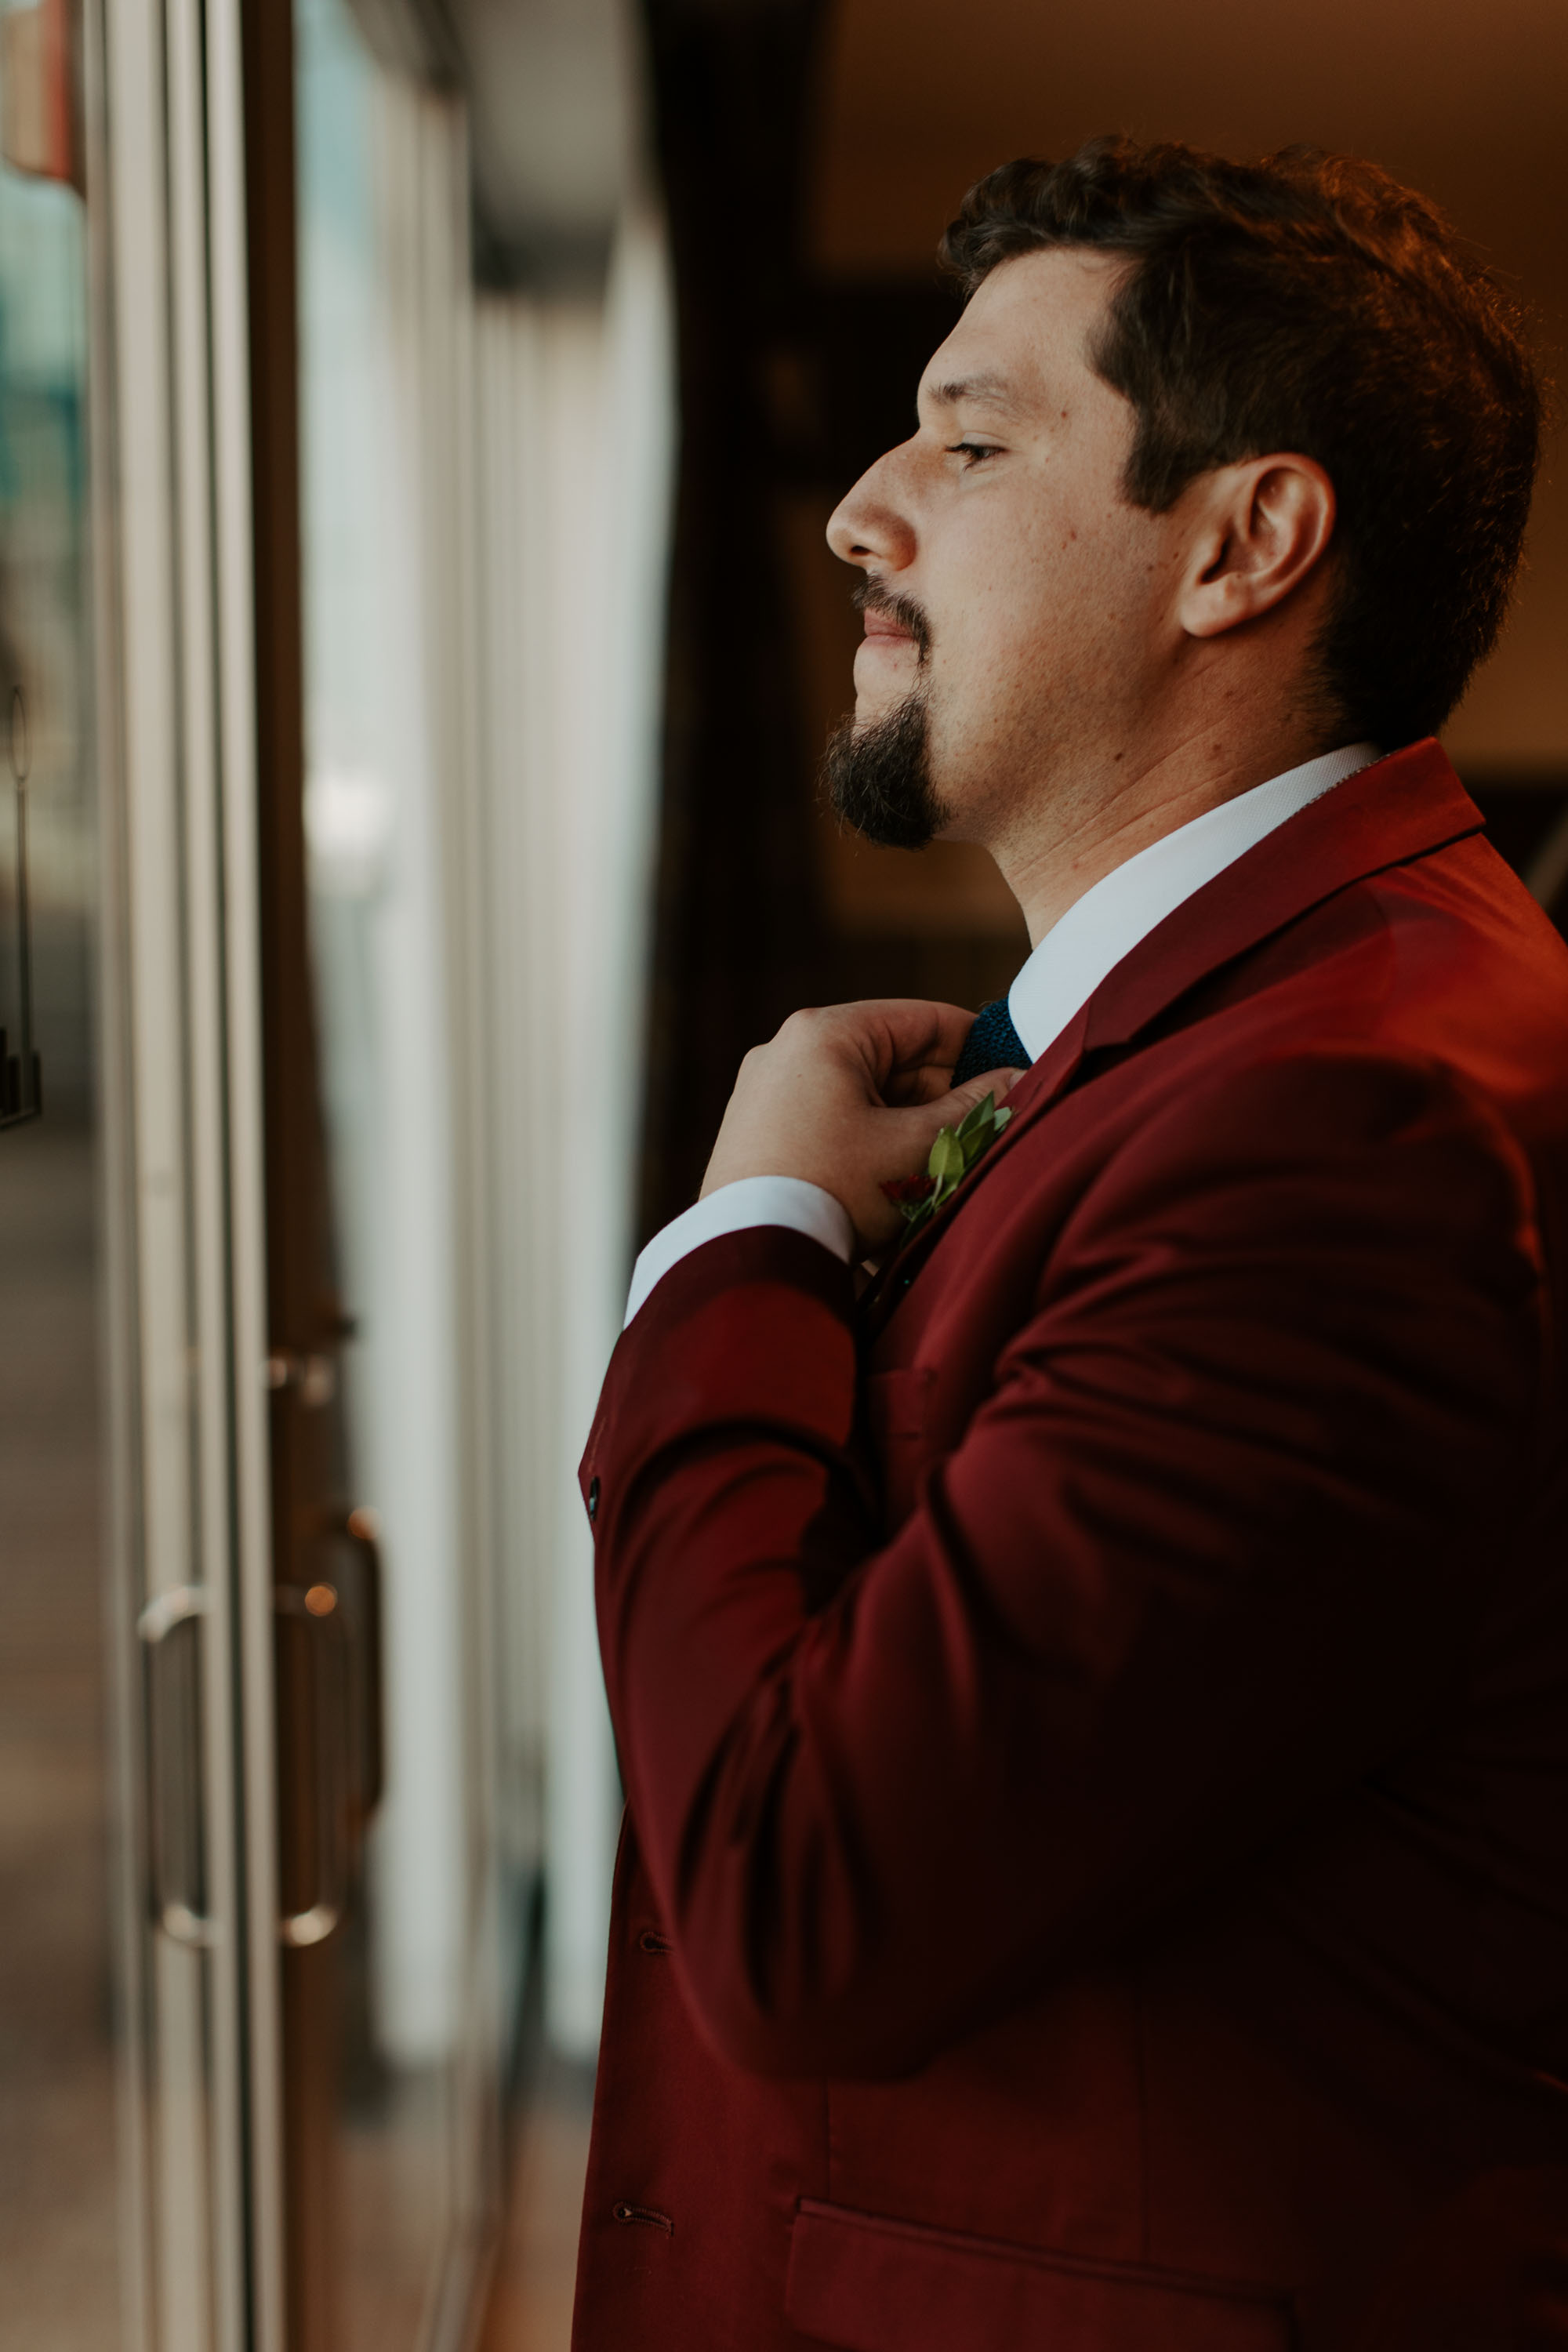 Groom putting on suit and tie before wedding day